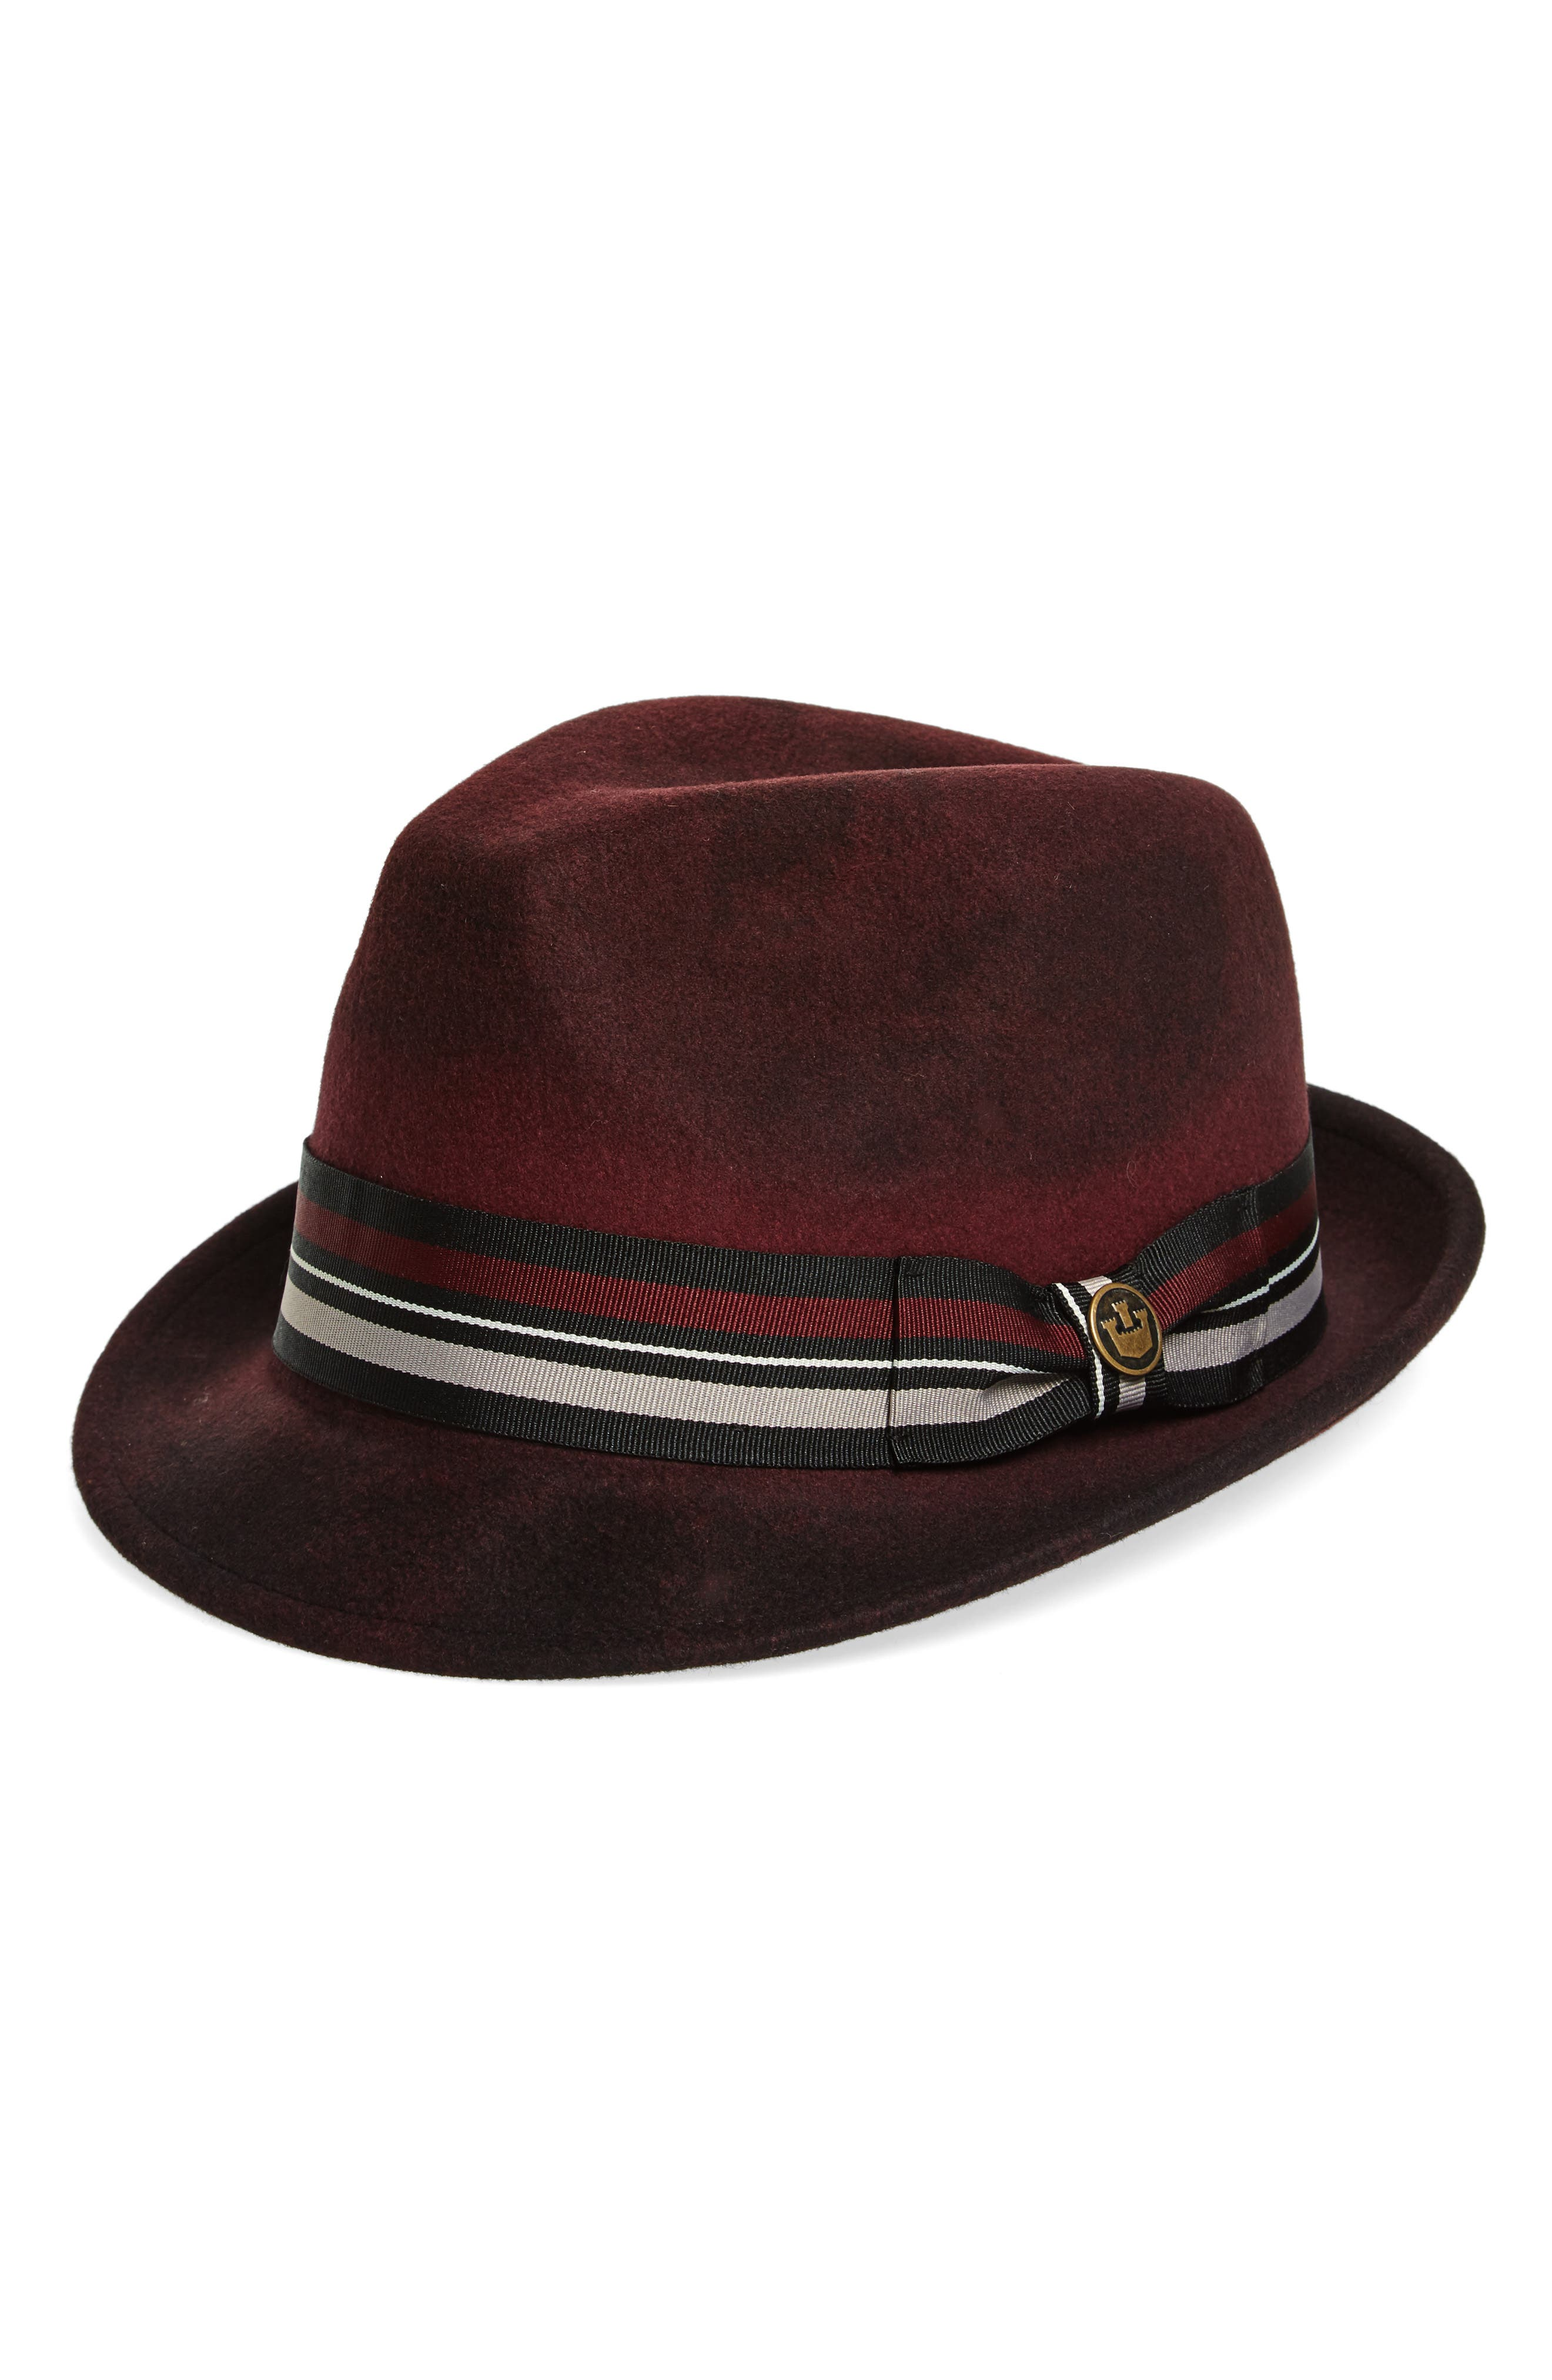 Main Image - Goorin Brothers Miles D Trilby